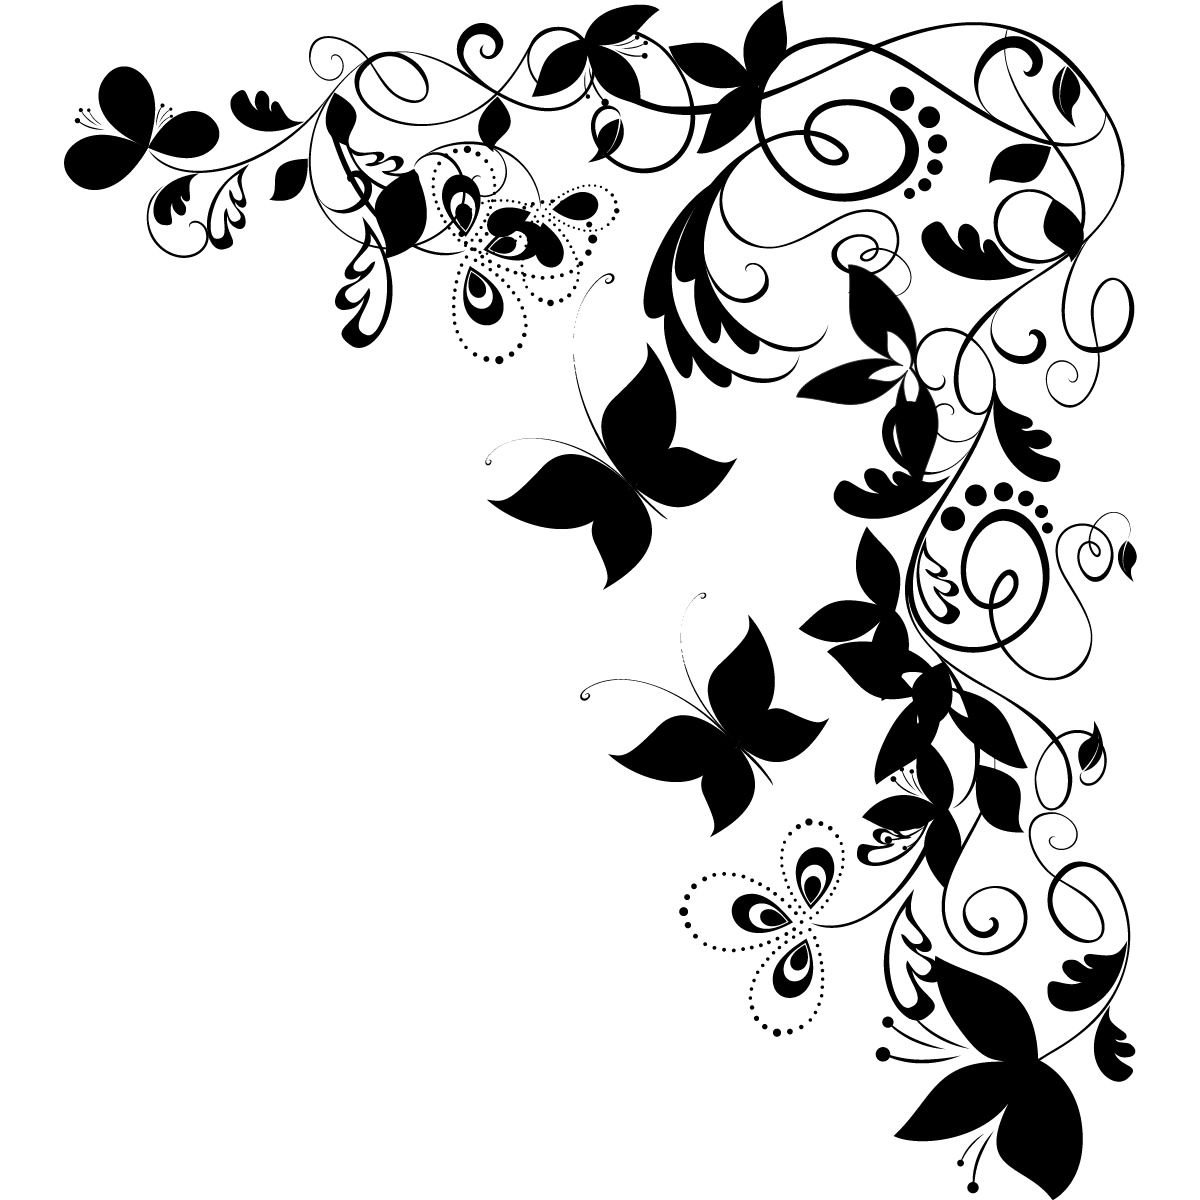 Details about Butterfly Floral Decorative Corner Wall Art